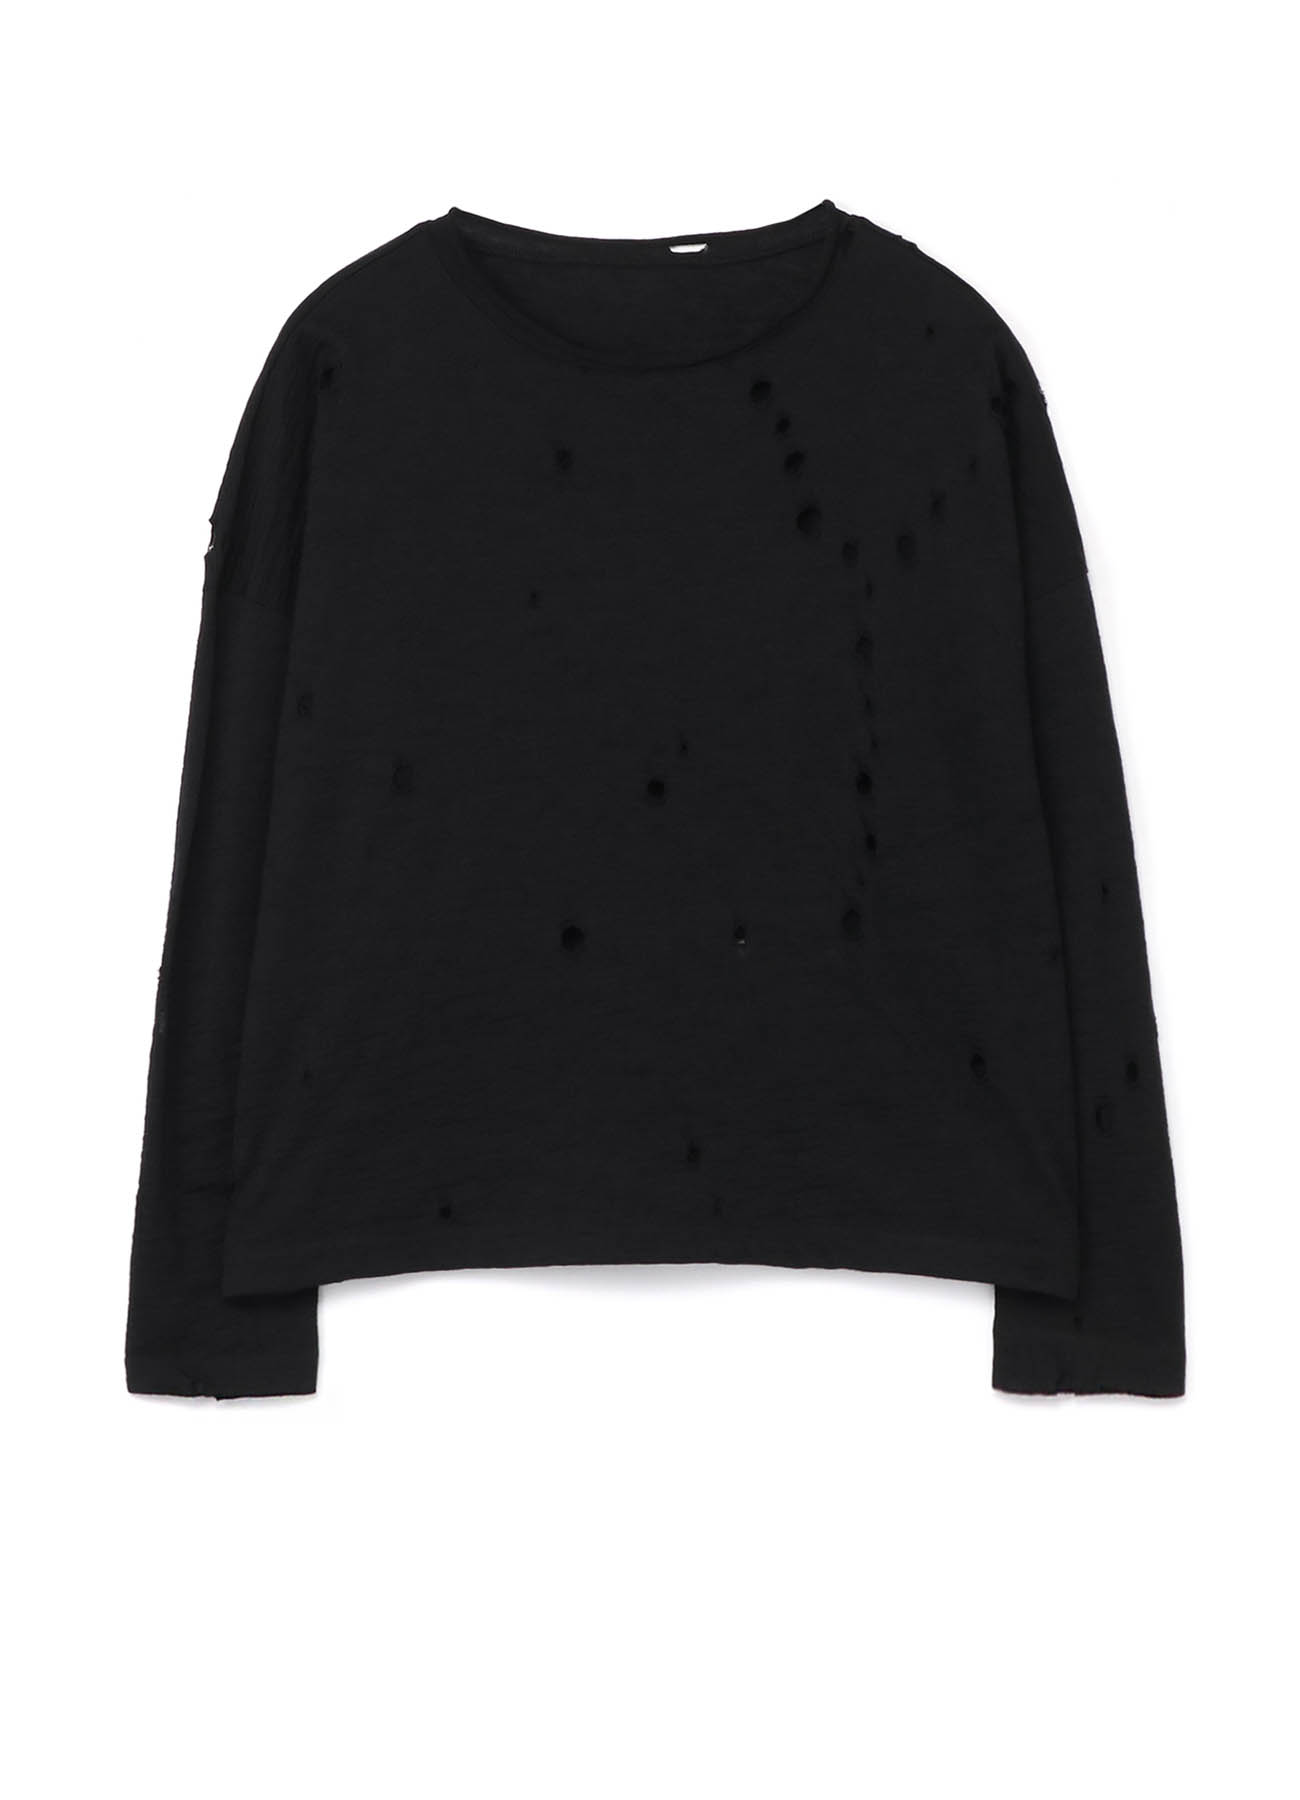 PERFORATED Y PRINT PLAIN STICH ROUND NECK BIG PULLOVER